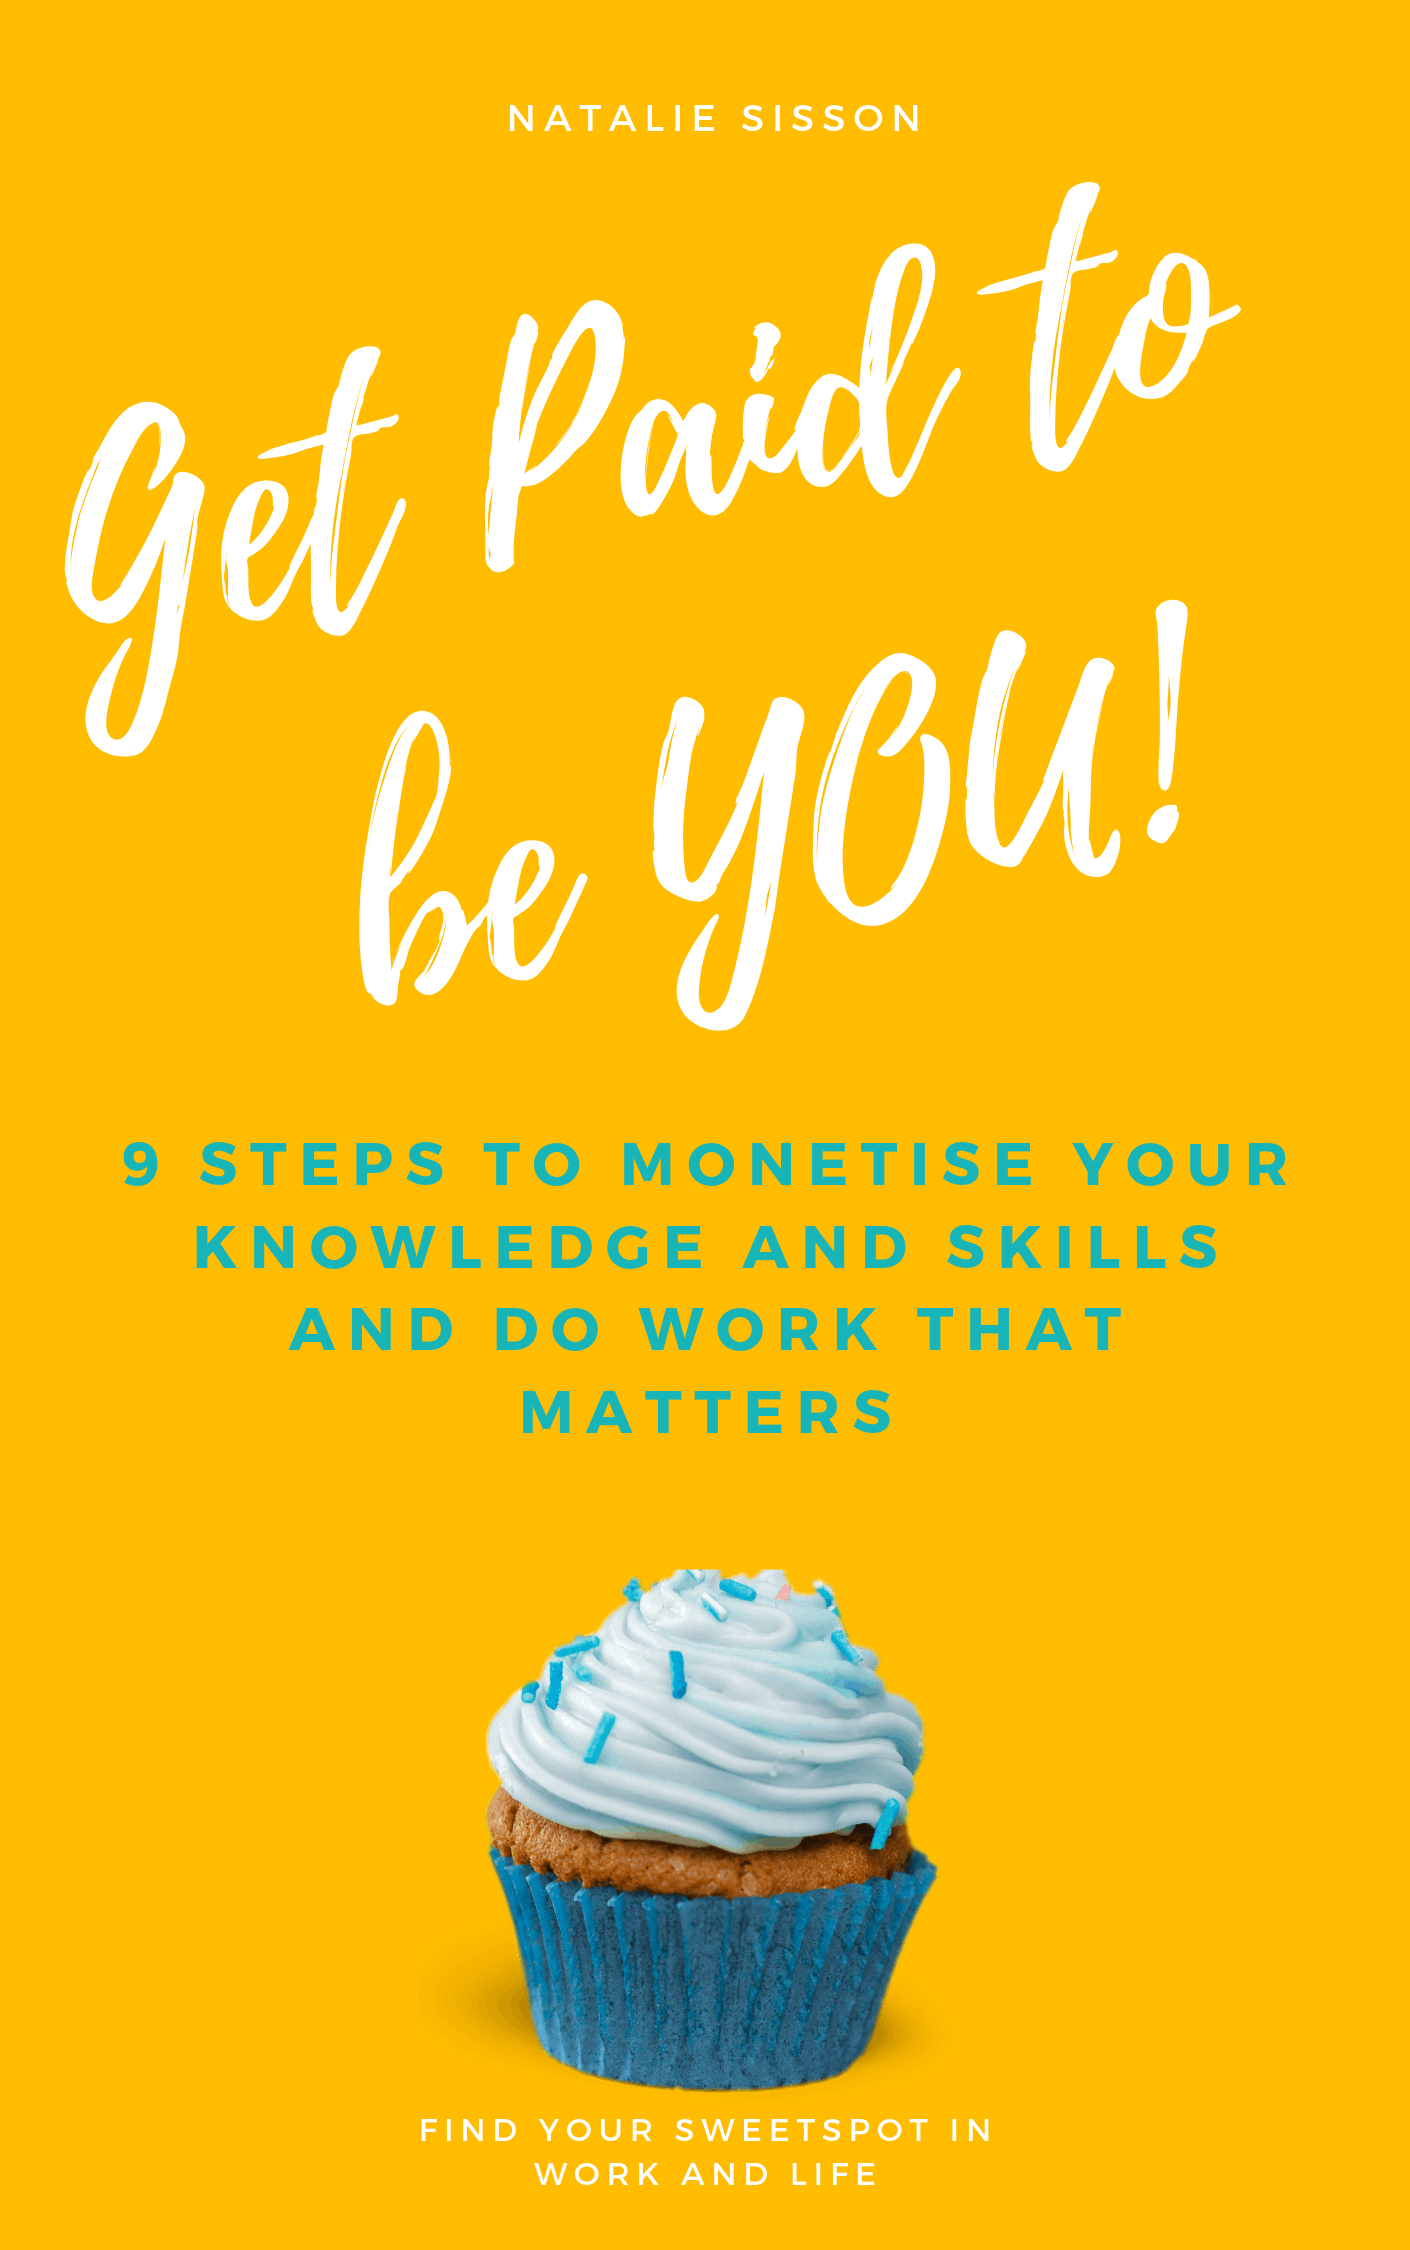 Get Paid to be YOU!